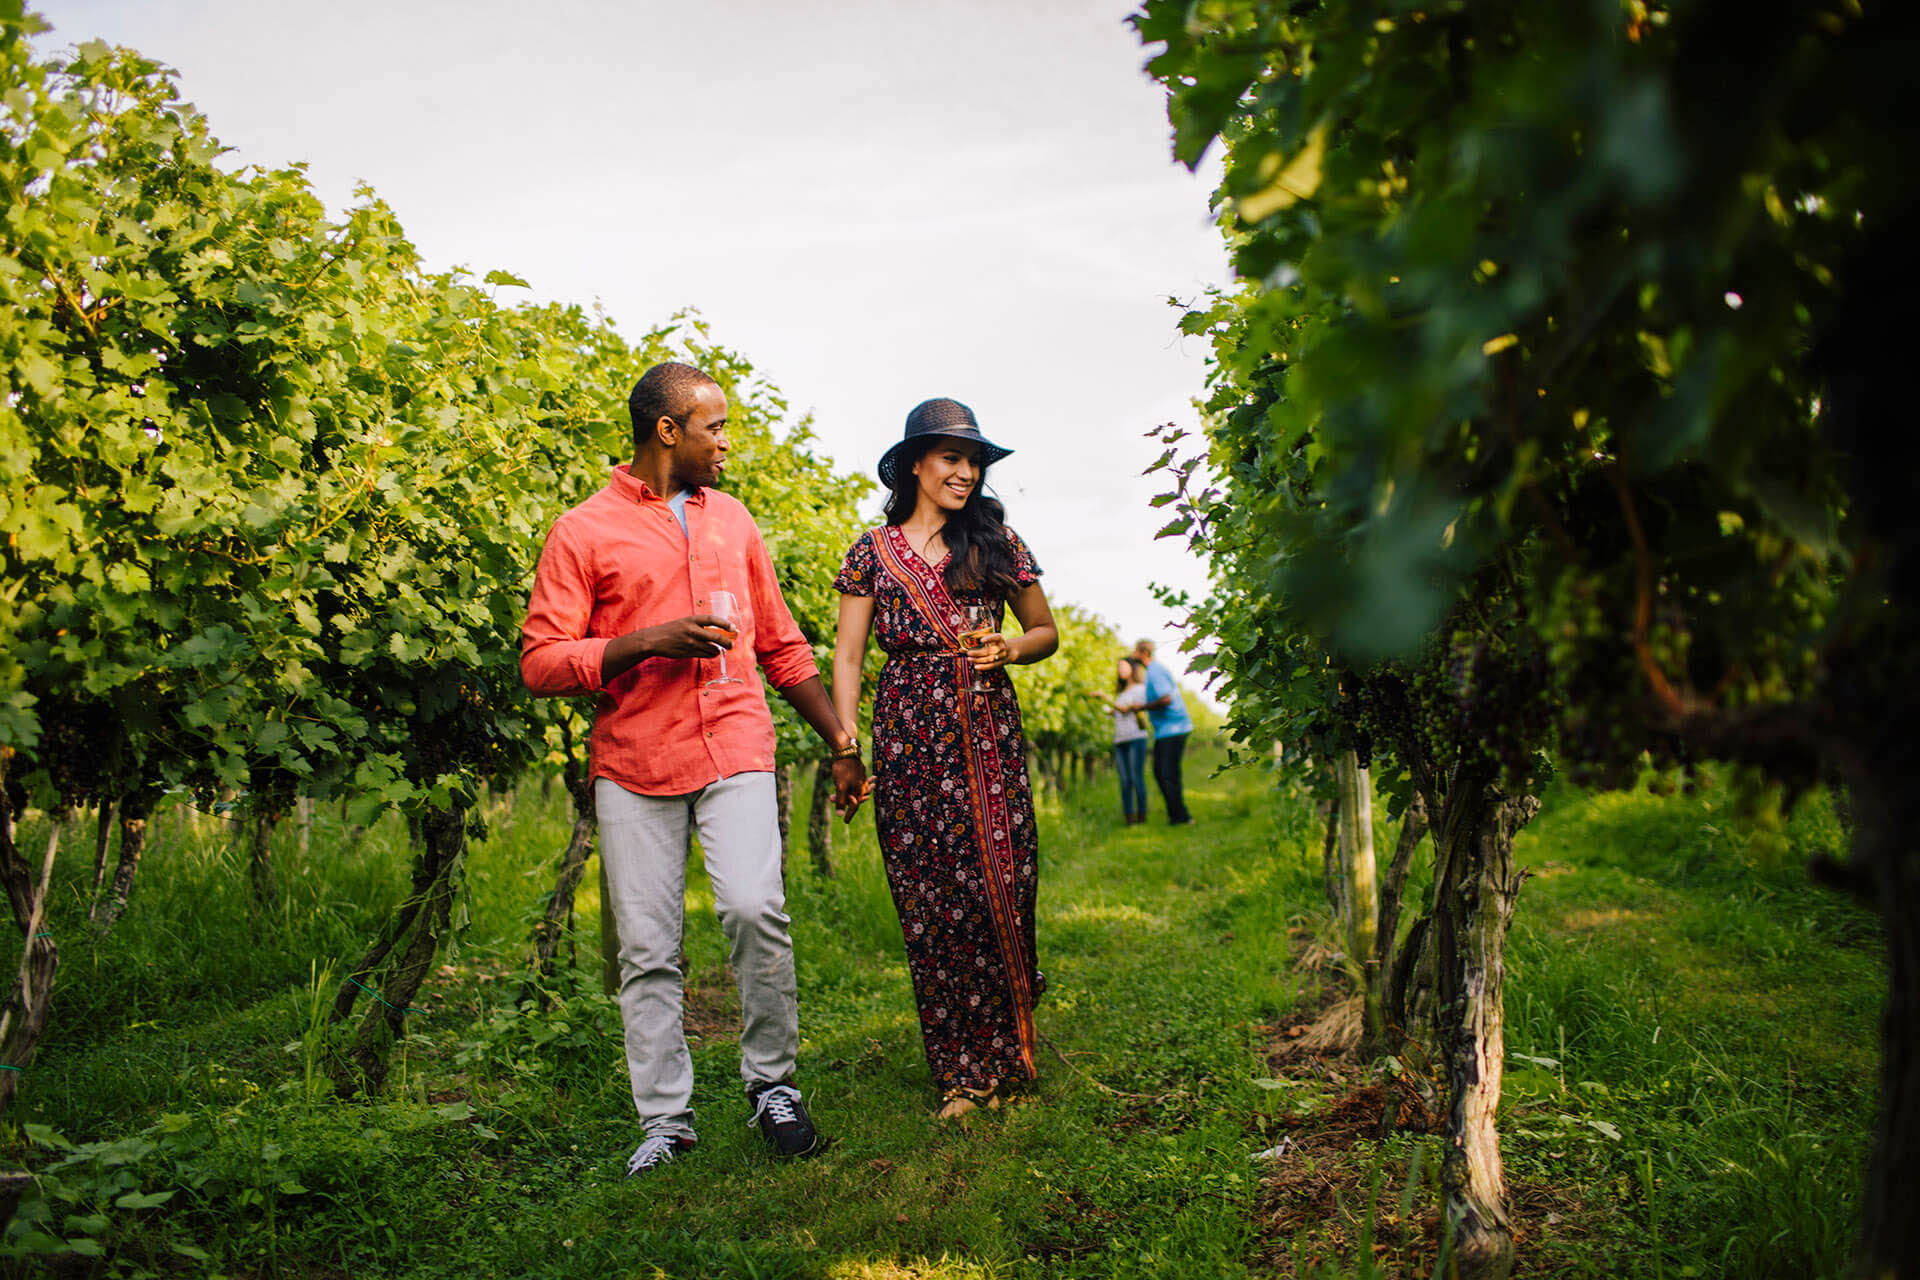 Touring Chatham Vineyards with SouthEast Expeditions